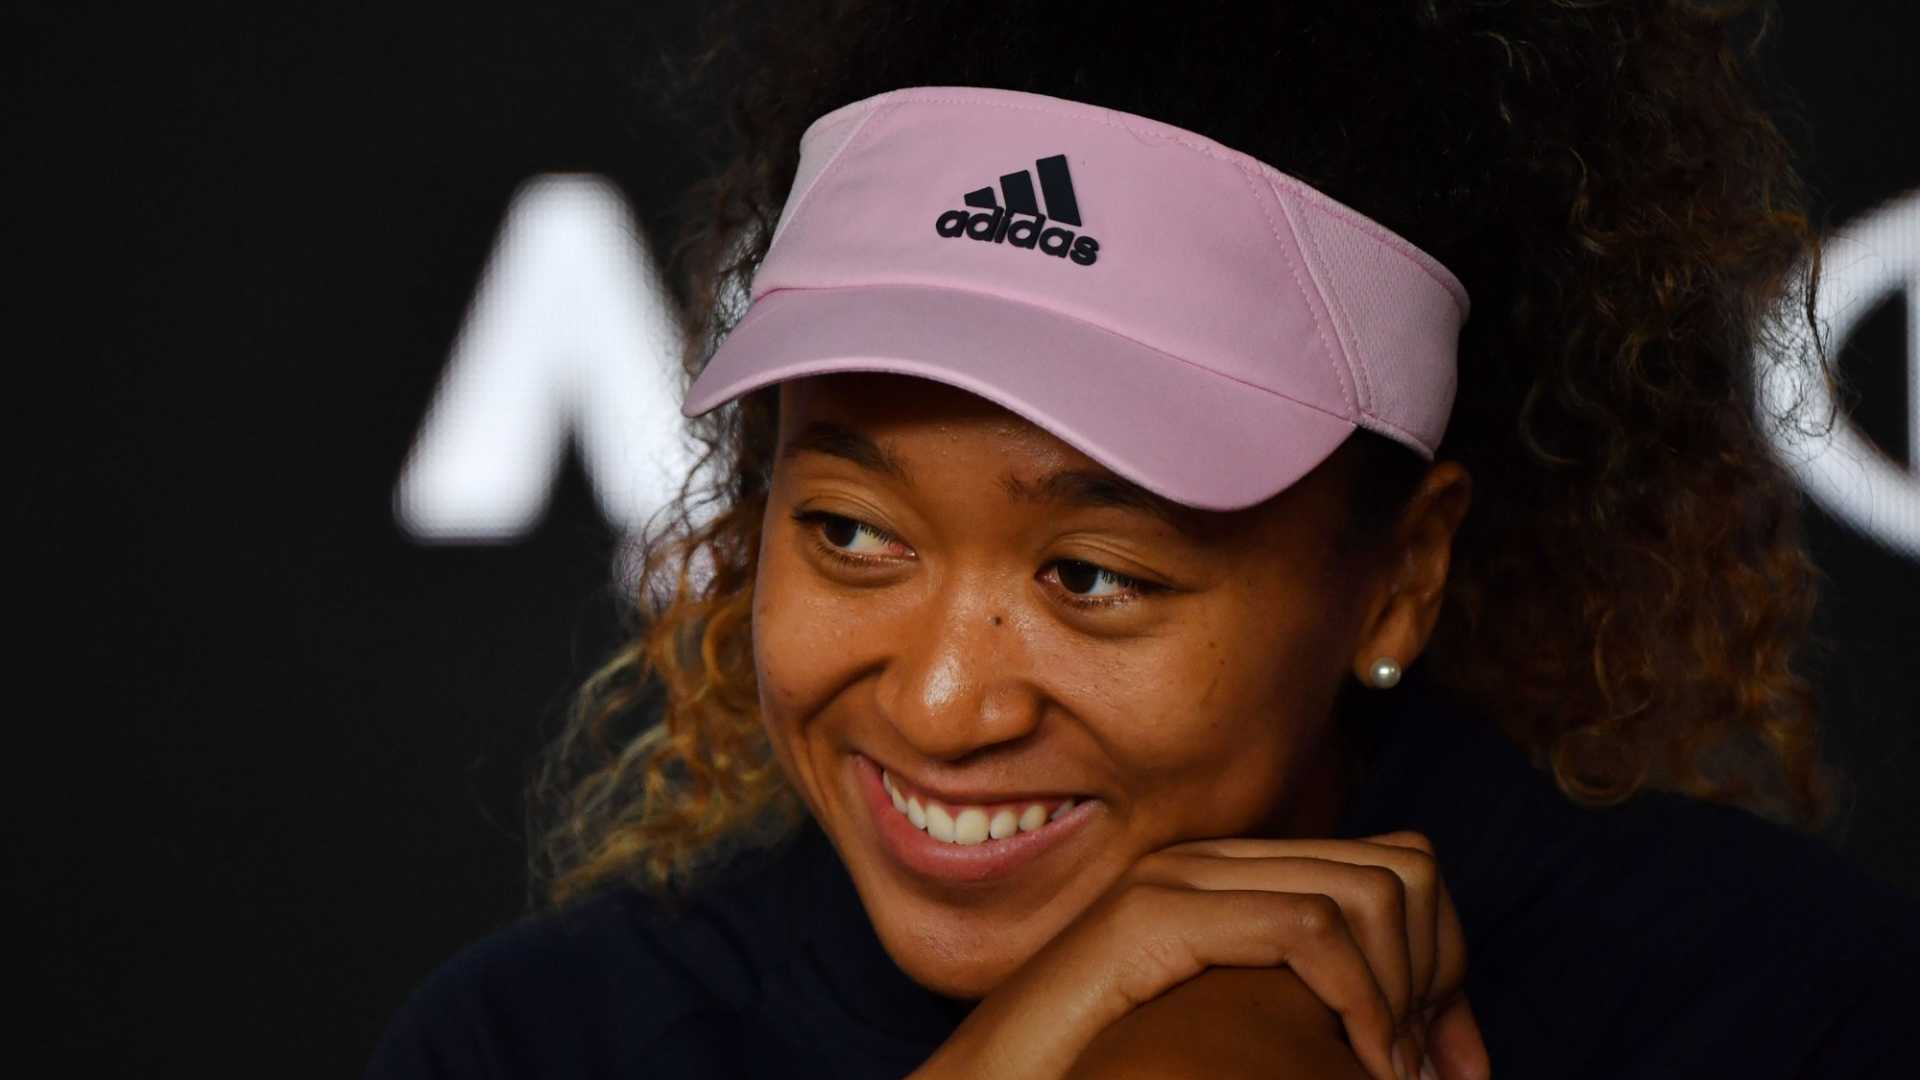 Australia Open Winner Naomi Osaka's Post-Match Interview Is a Master Class in Grace and Humility